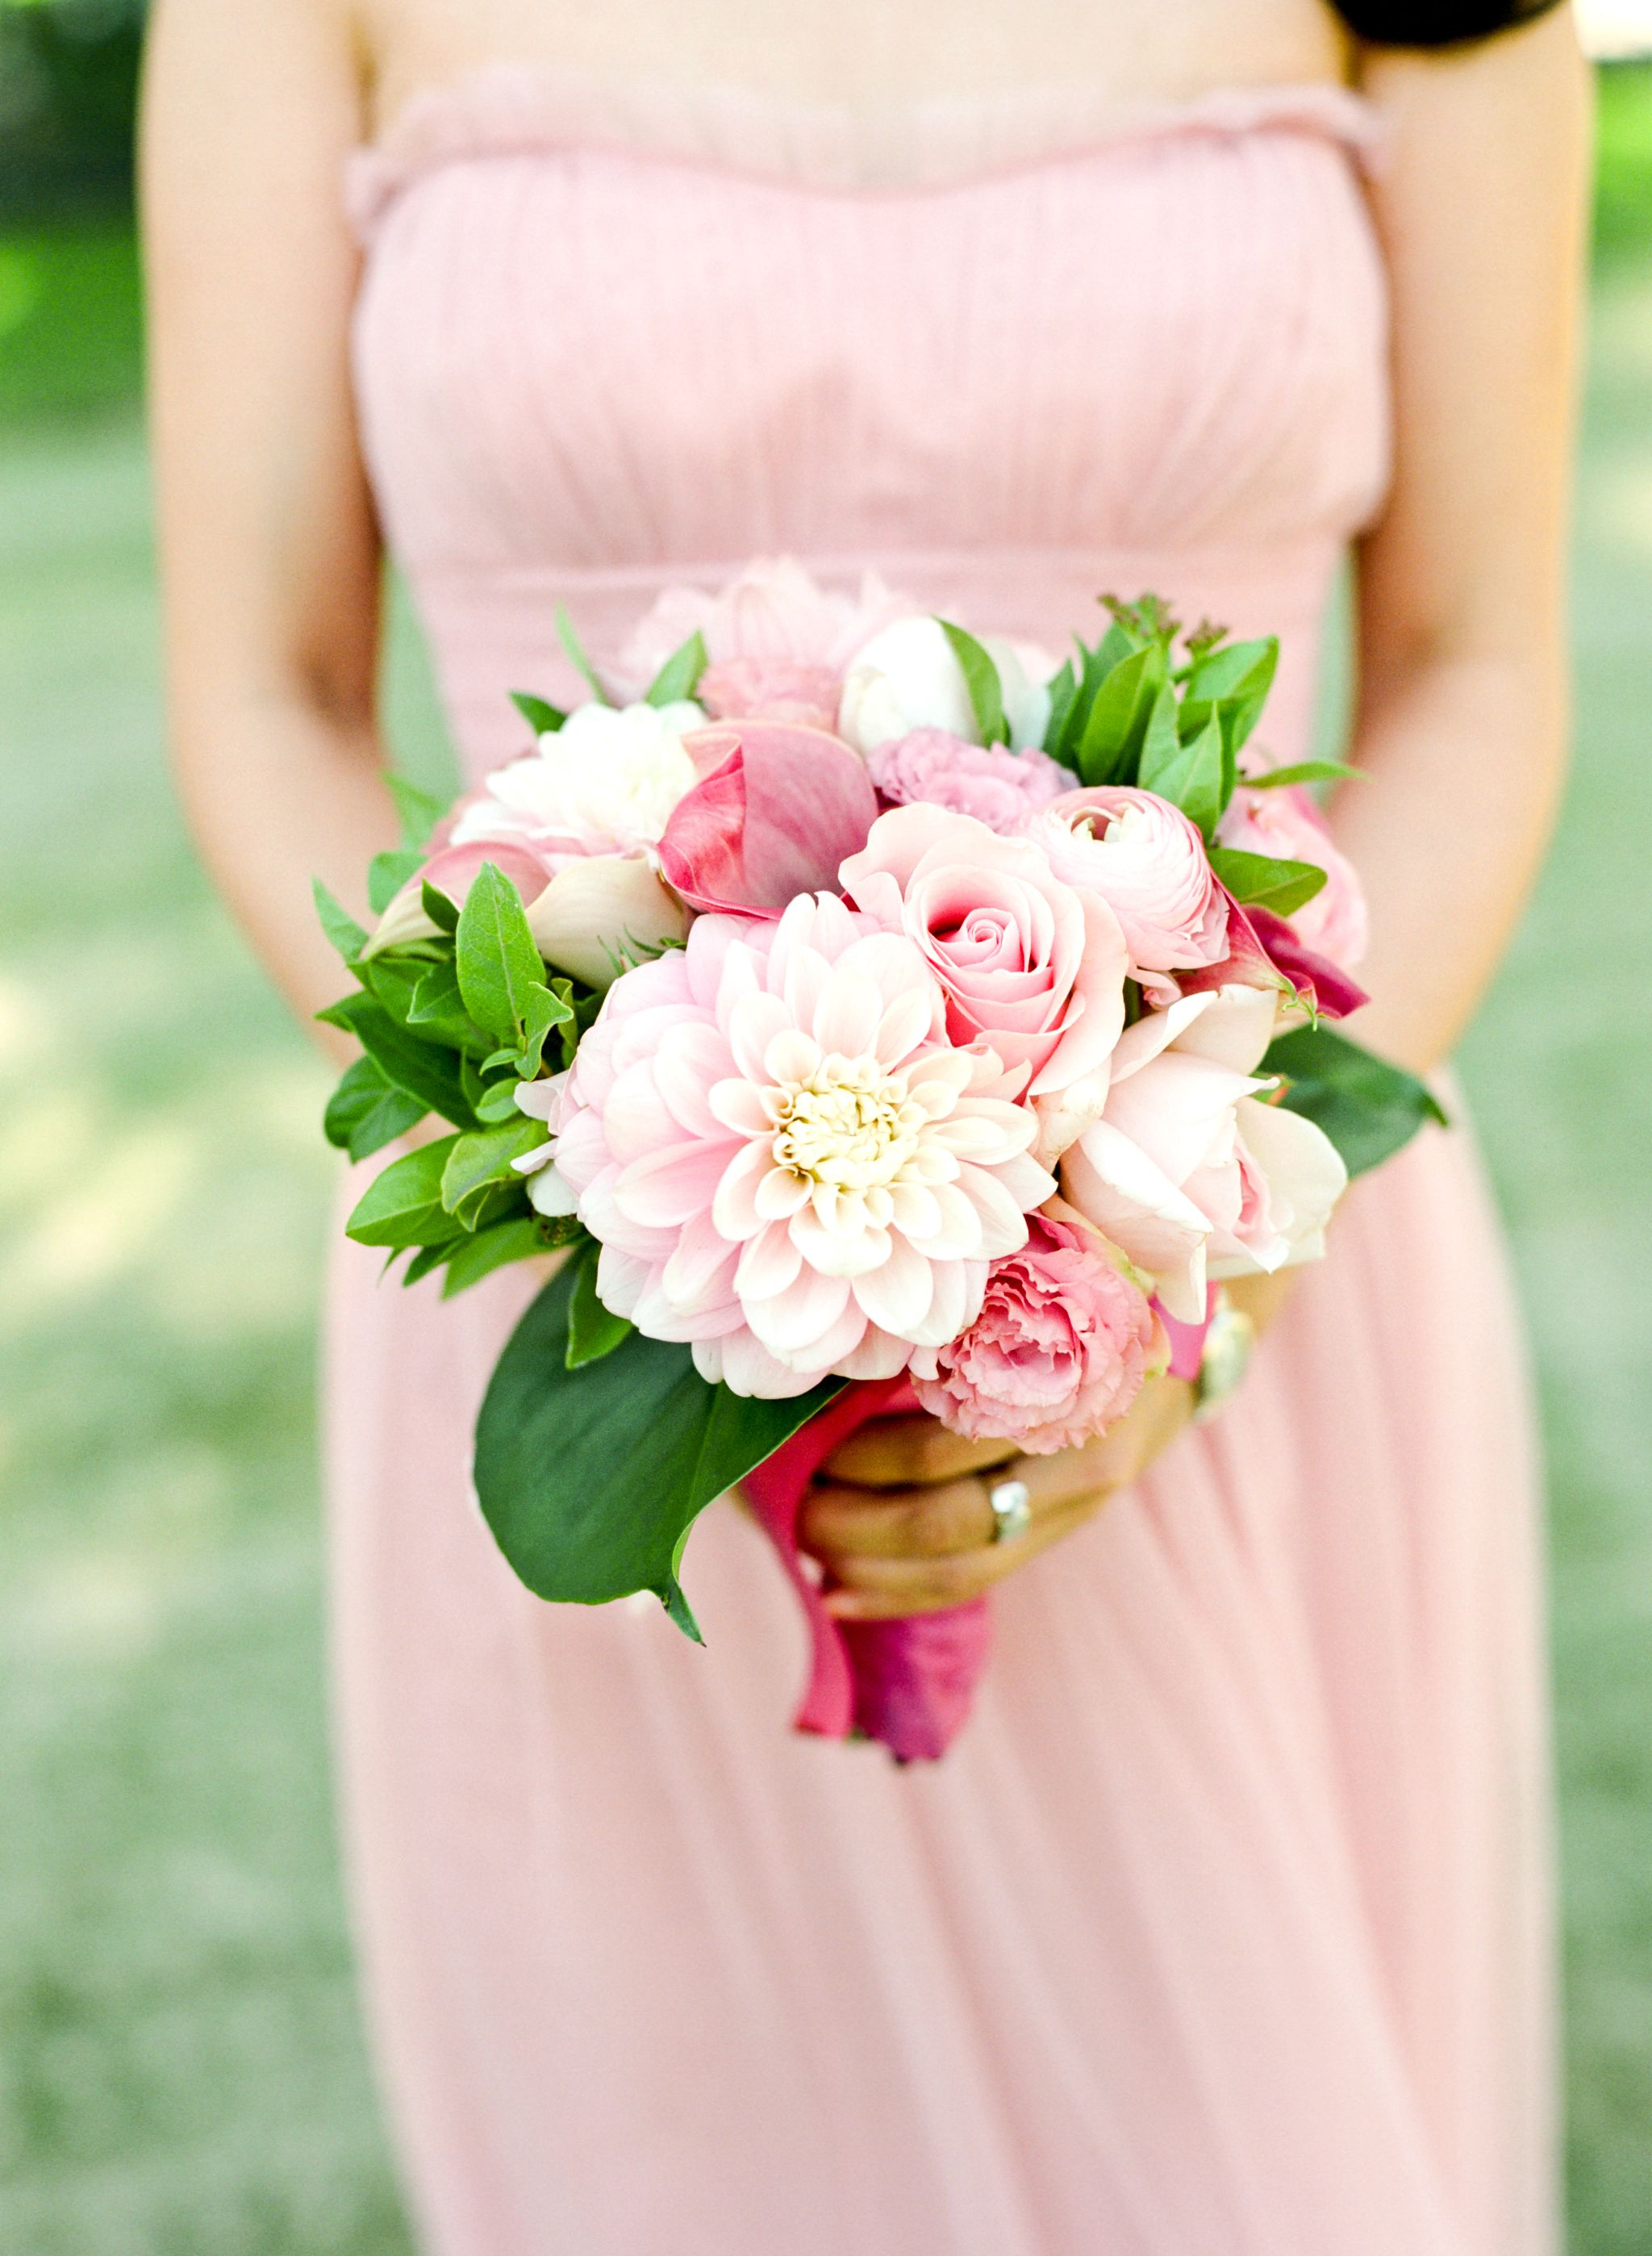 Beautiful pink bridesmaid bouquet of dahlias, calla lilies, ranunculus and roses.